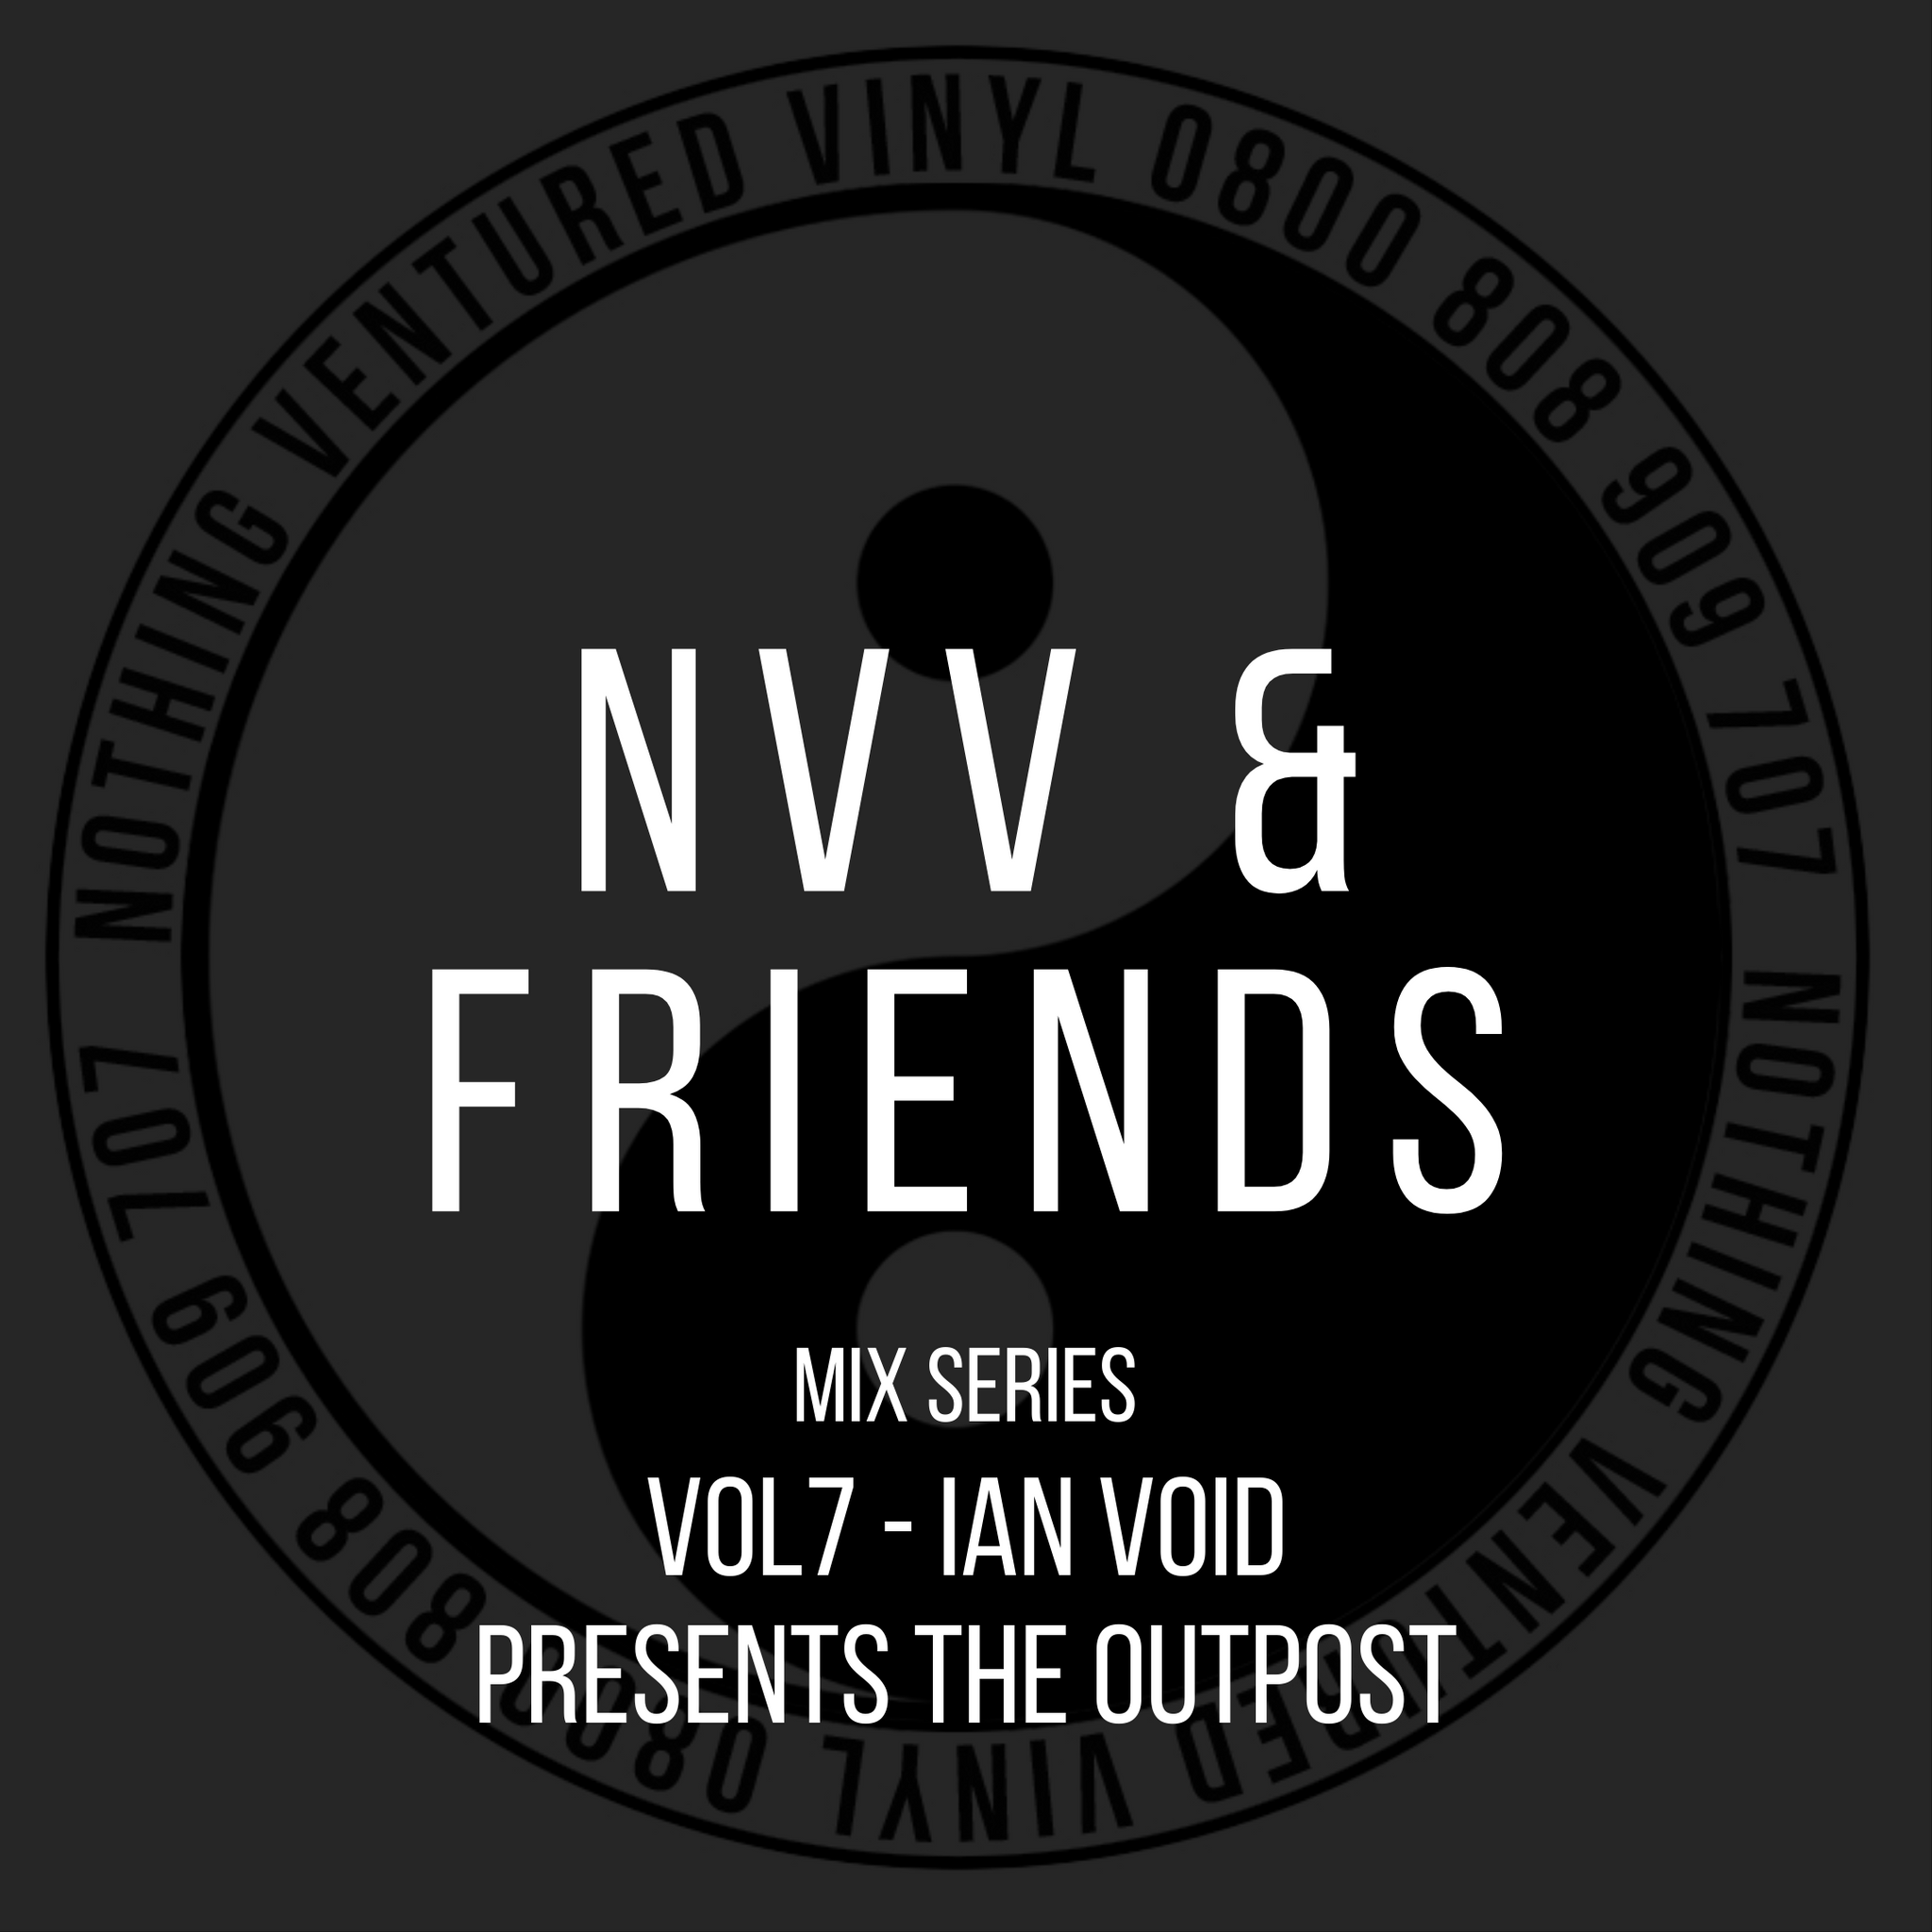 NVV & FRIENDS VOL7 - IAN VOID PRESENTS THE OUTPOST